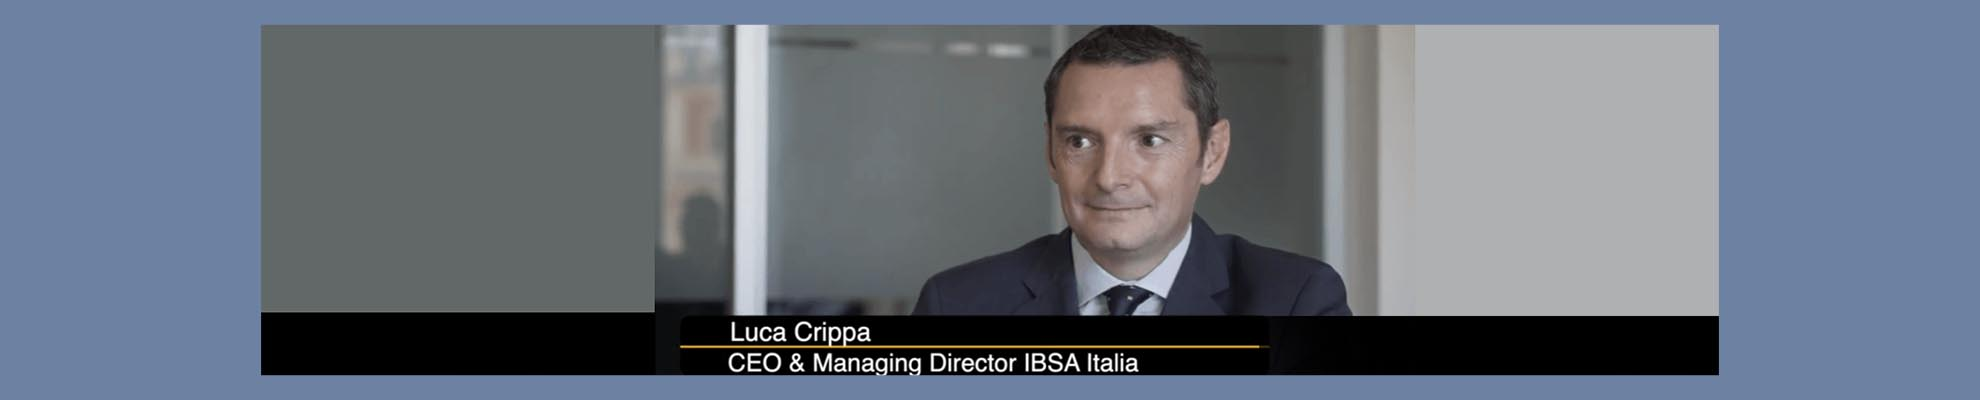 Luca Crippa intervista Health Industry